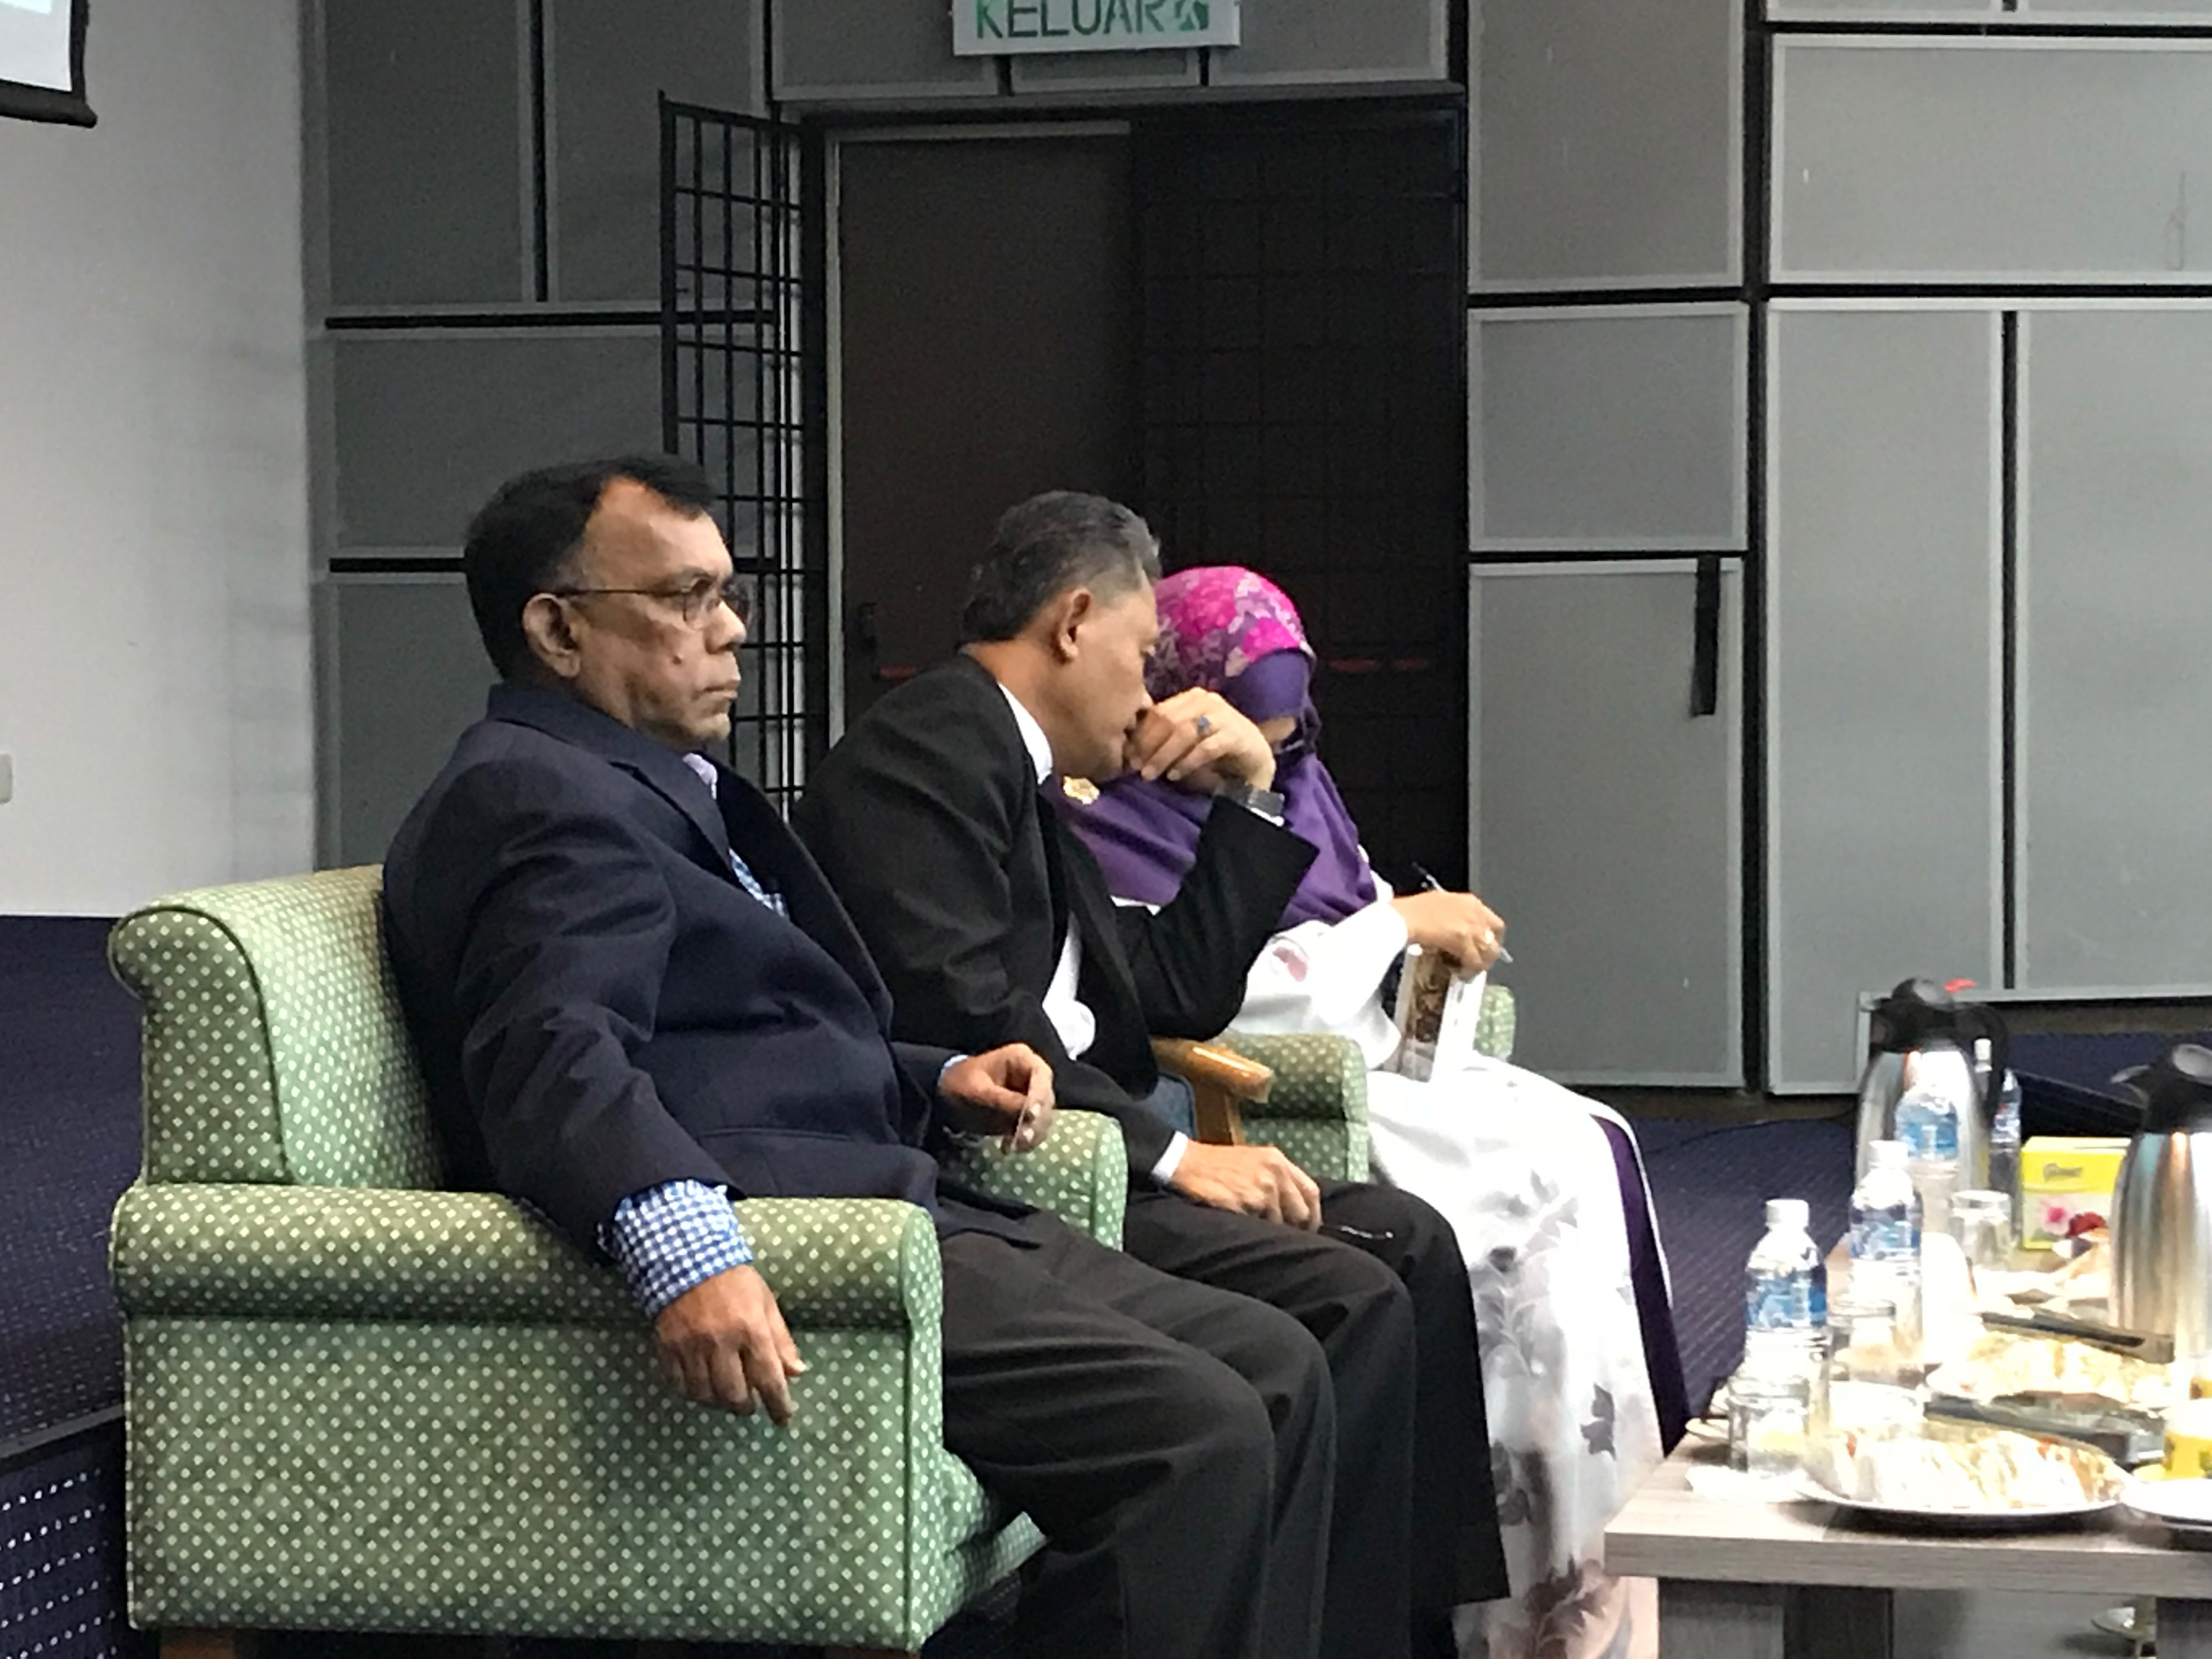 ROADSHOW No. 6 - IIUM GLOBAL PROMINENCE PROJECT FOR KULLIYYAH OF ISLAMIC REVEALED KNOWLEDGE AND HUMAN SCIENCES ION (13th April 2018)